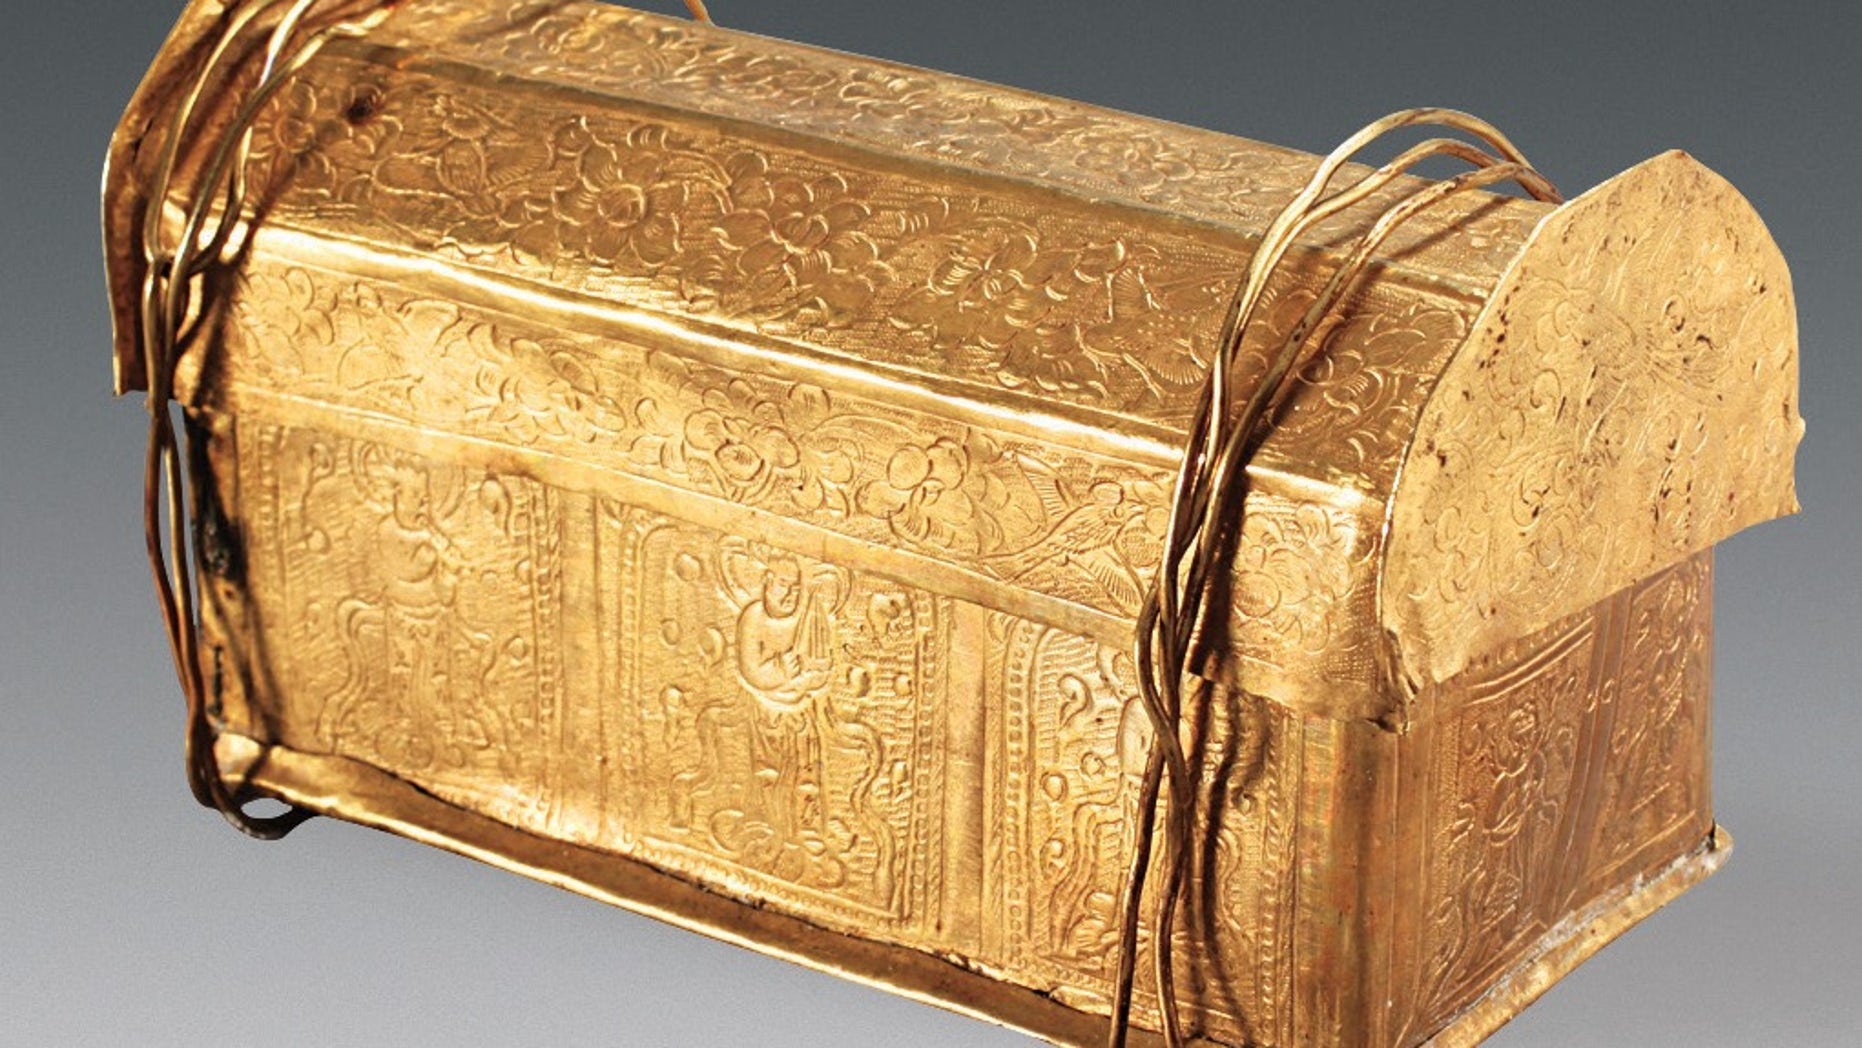 A skull bone of the Buddha was found inside this gold casket, which was stored in a silver casket within the stupa model, found in a crypt beneath a Buddhist temple.